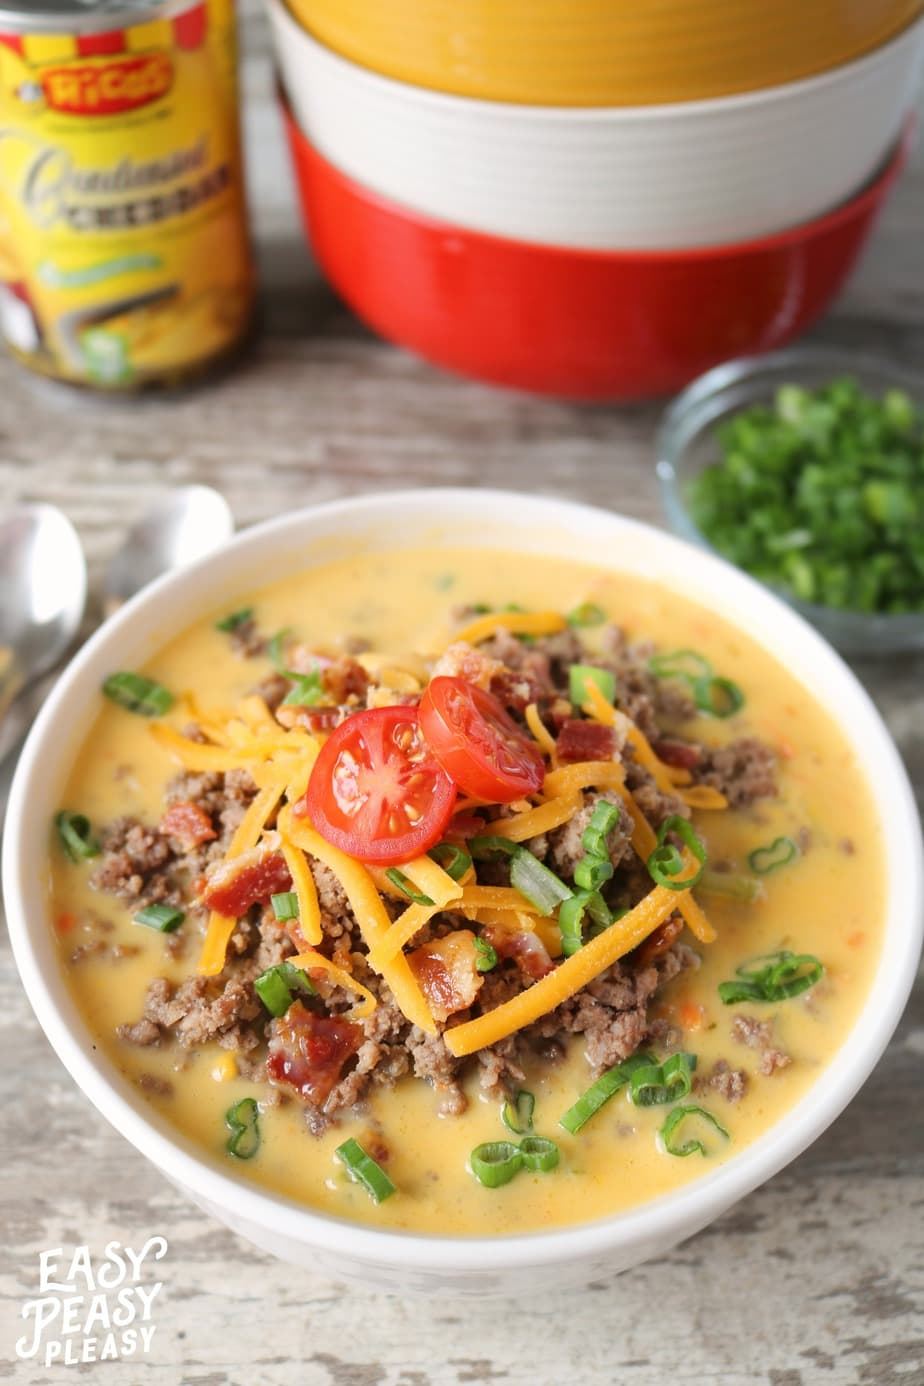 Ricos Bacon Cheeseburger Soup is the perfect freezer and meal prep idea to make dinner a breeze all month long.